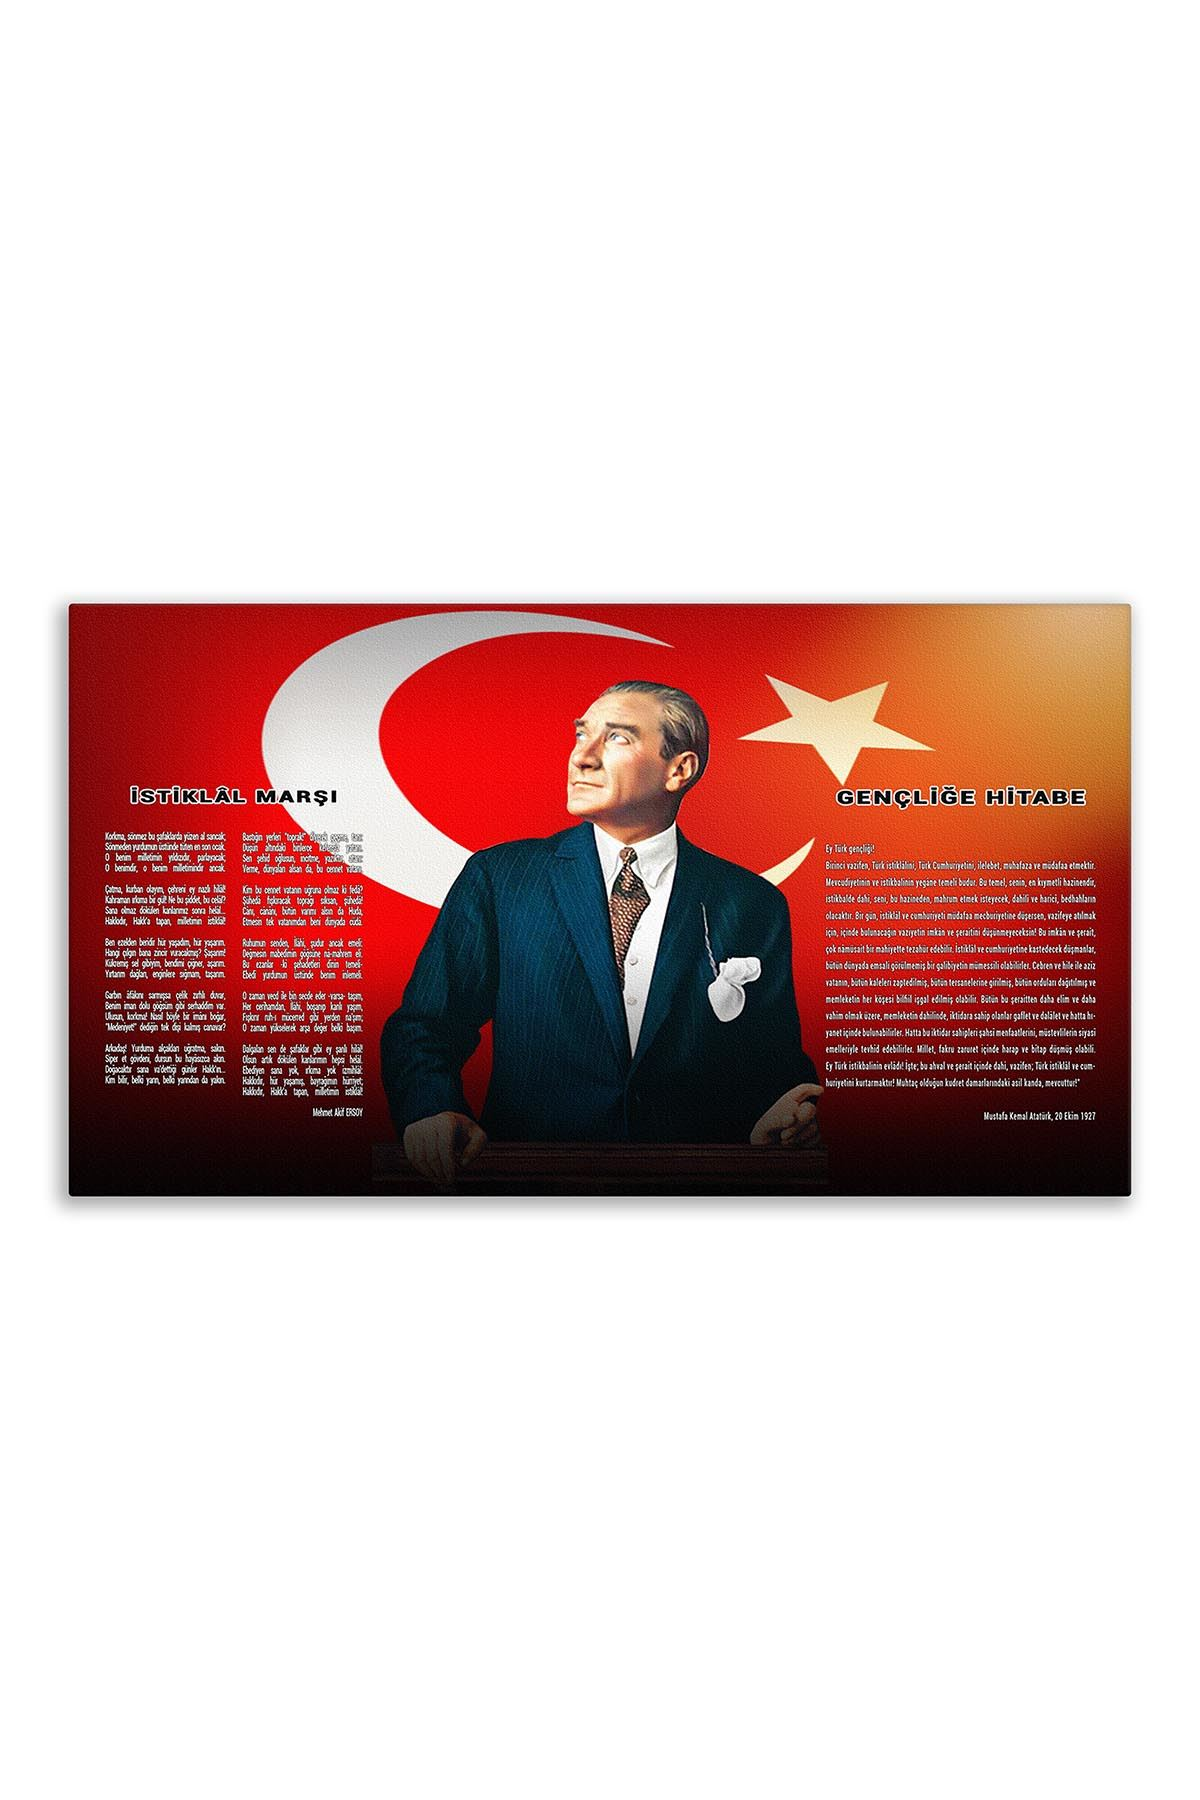 Atatürk Canvas Board With Turkish Flag | Printed Canvas Board | Digital Printing